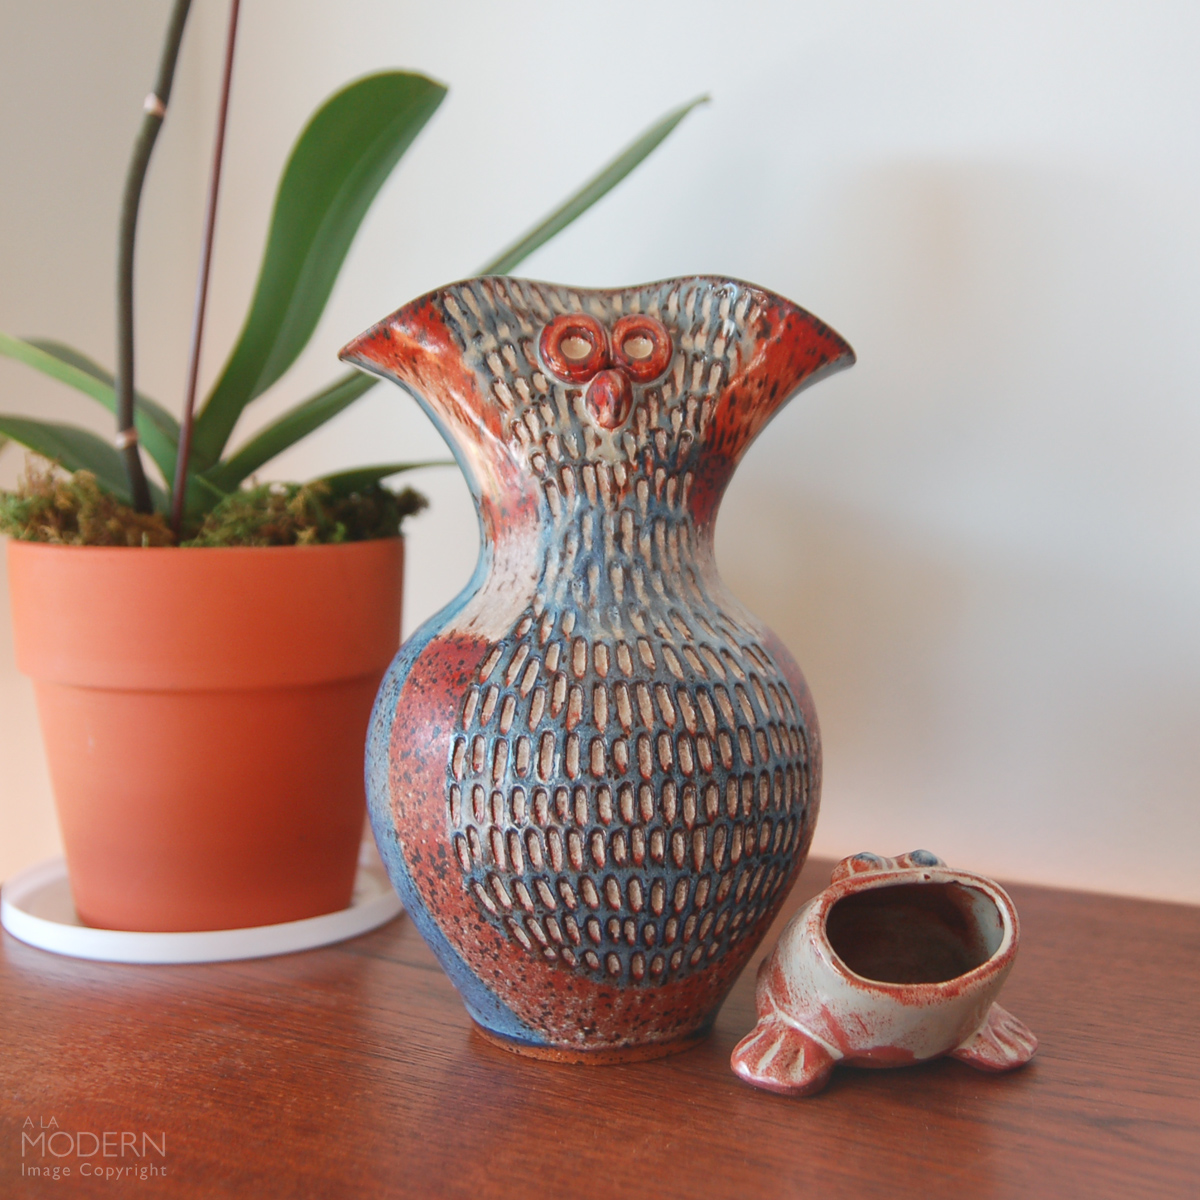 David Stewart Studio Owl Vase and Frog Planter